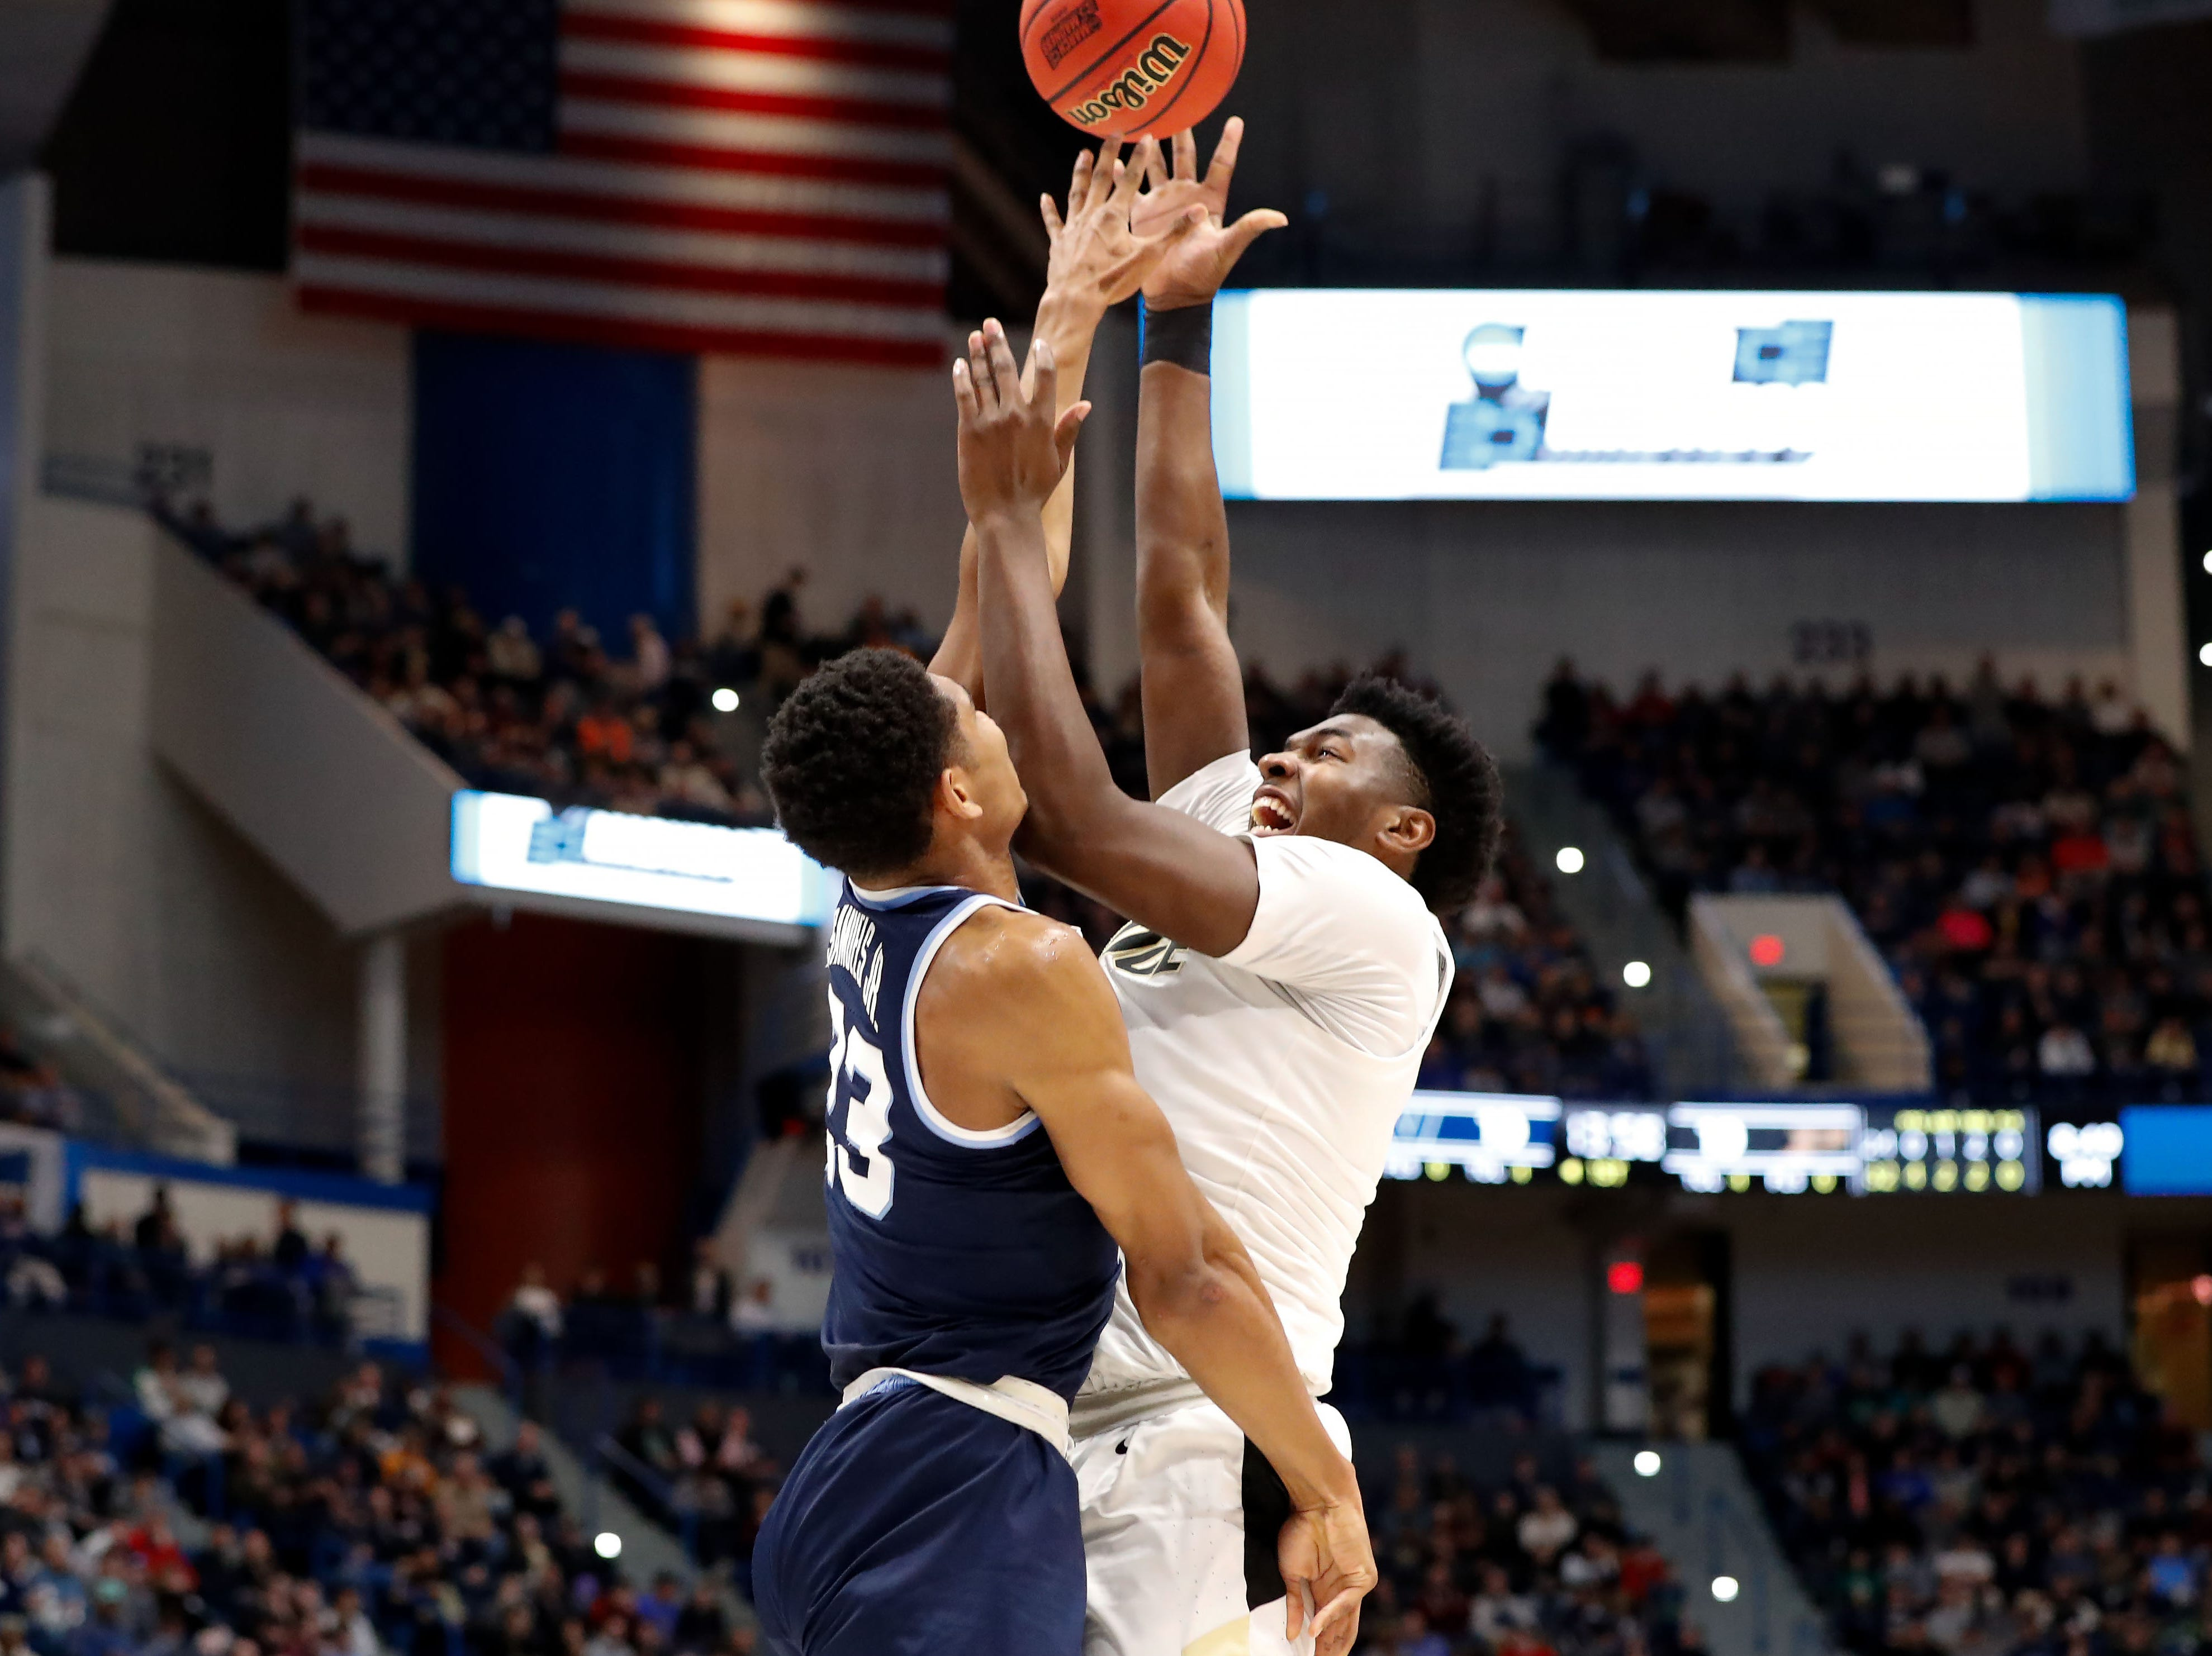 Mar 23, 2019; Hartford, CT, USA; Villanova Wildcats forward Jermaine Samuels (23) blocks a shot from Purdue Boilermakers forward Trevion Williams (50) during the first half of a game in the second round of the 2019 NCAA Tournament at XL Center. Mandatory Credit: David Butler II-USA TODAY Sports